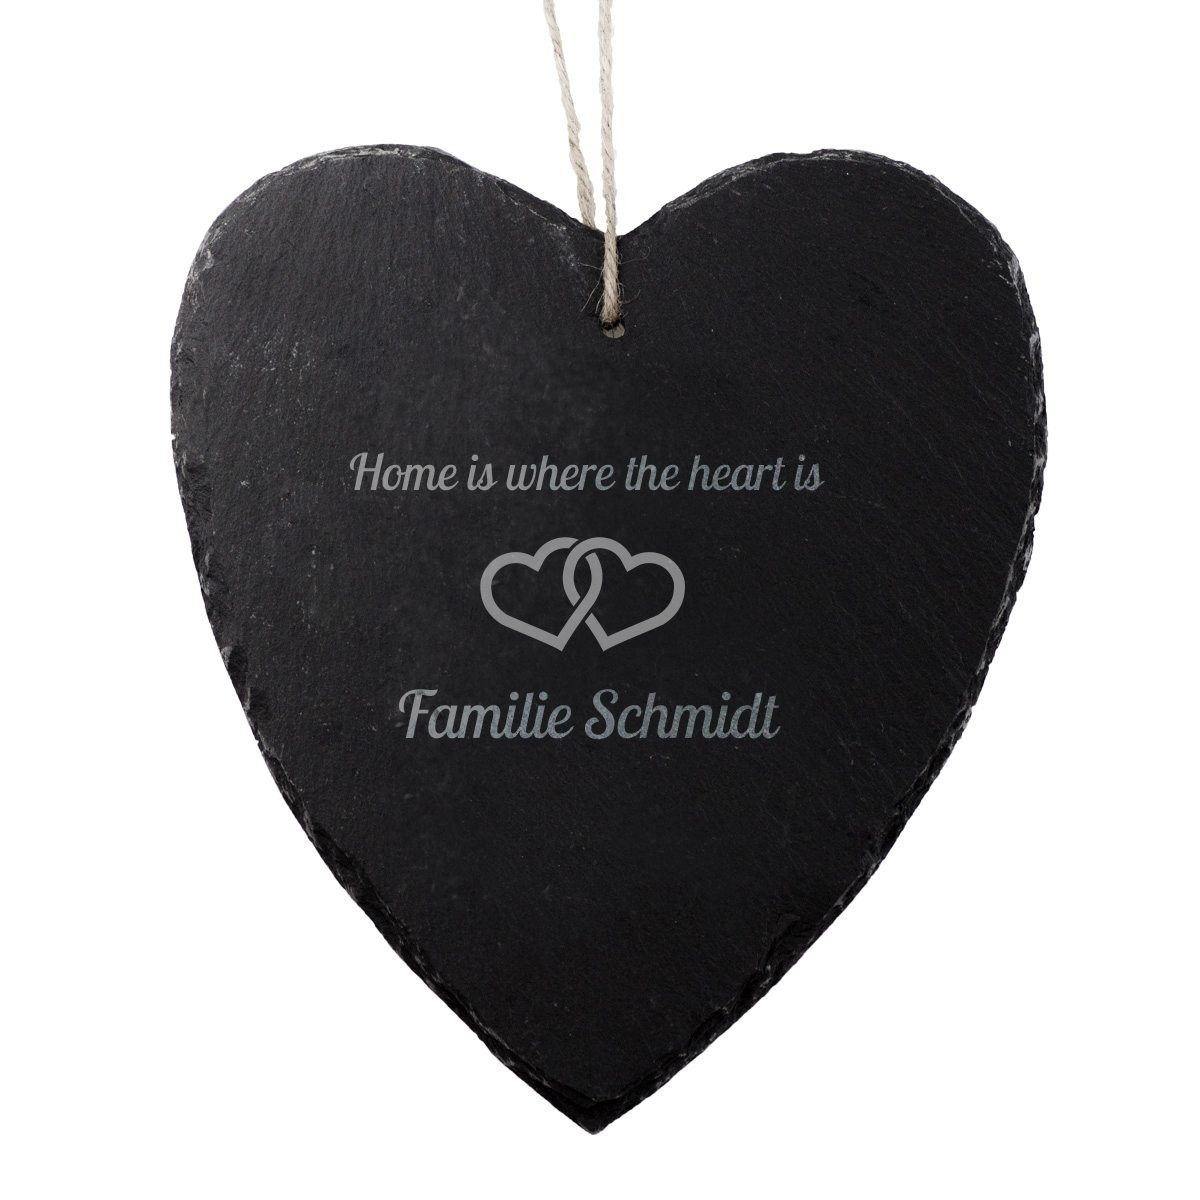 SCHIEFER-HERZ MIT GRAVUR HOME IS WHERE THE HEART IS